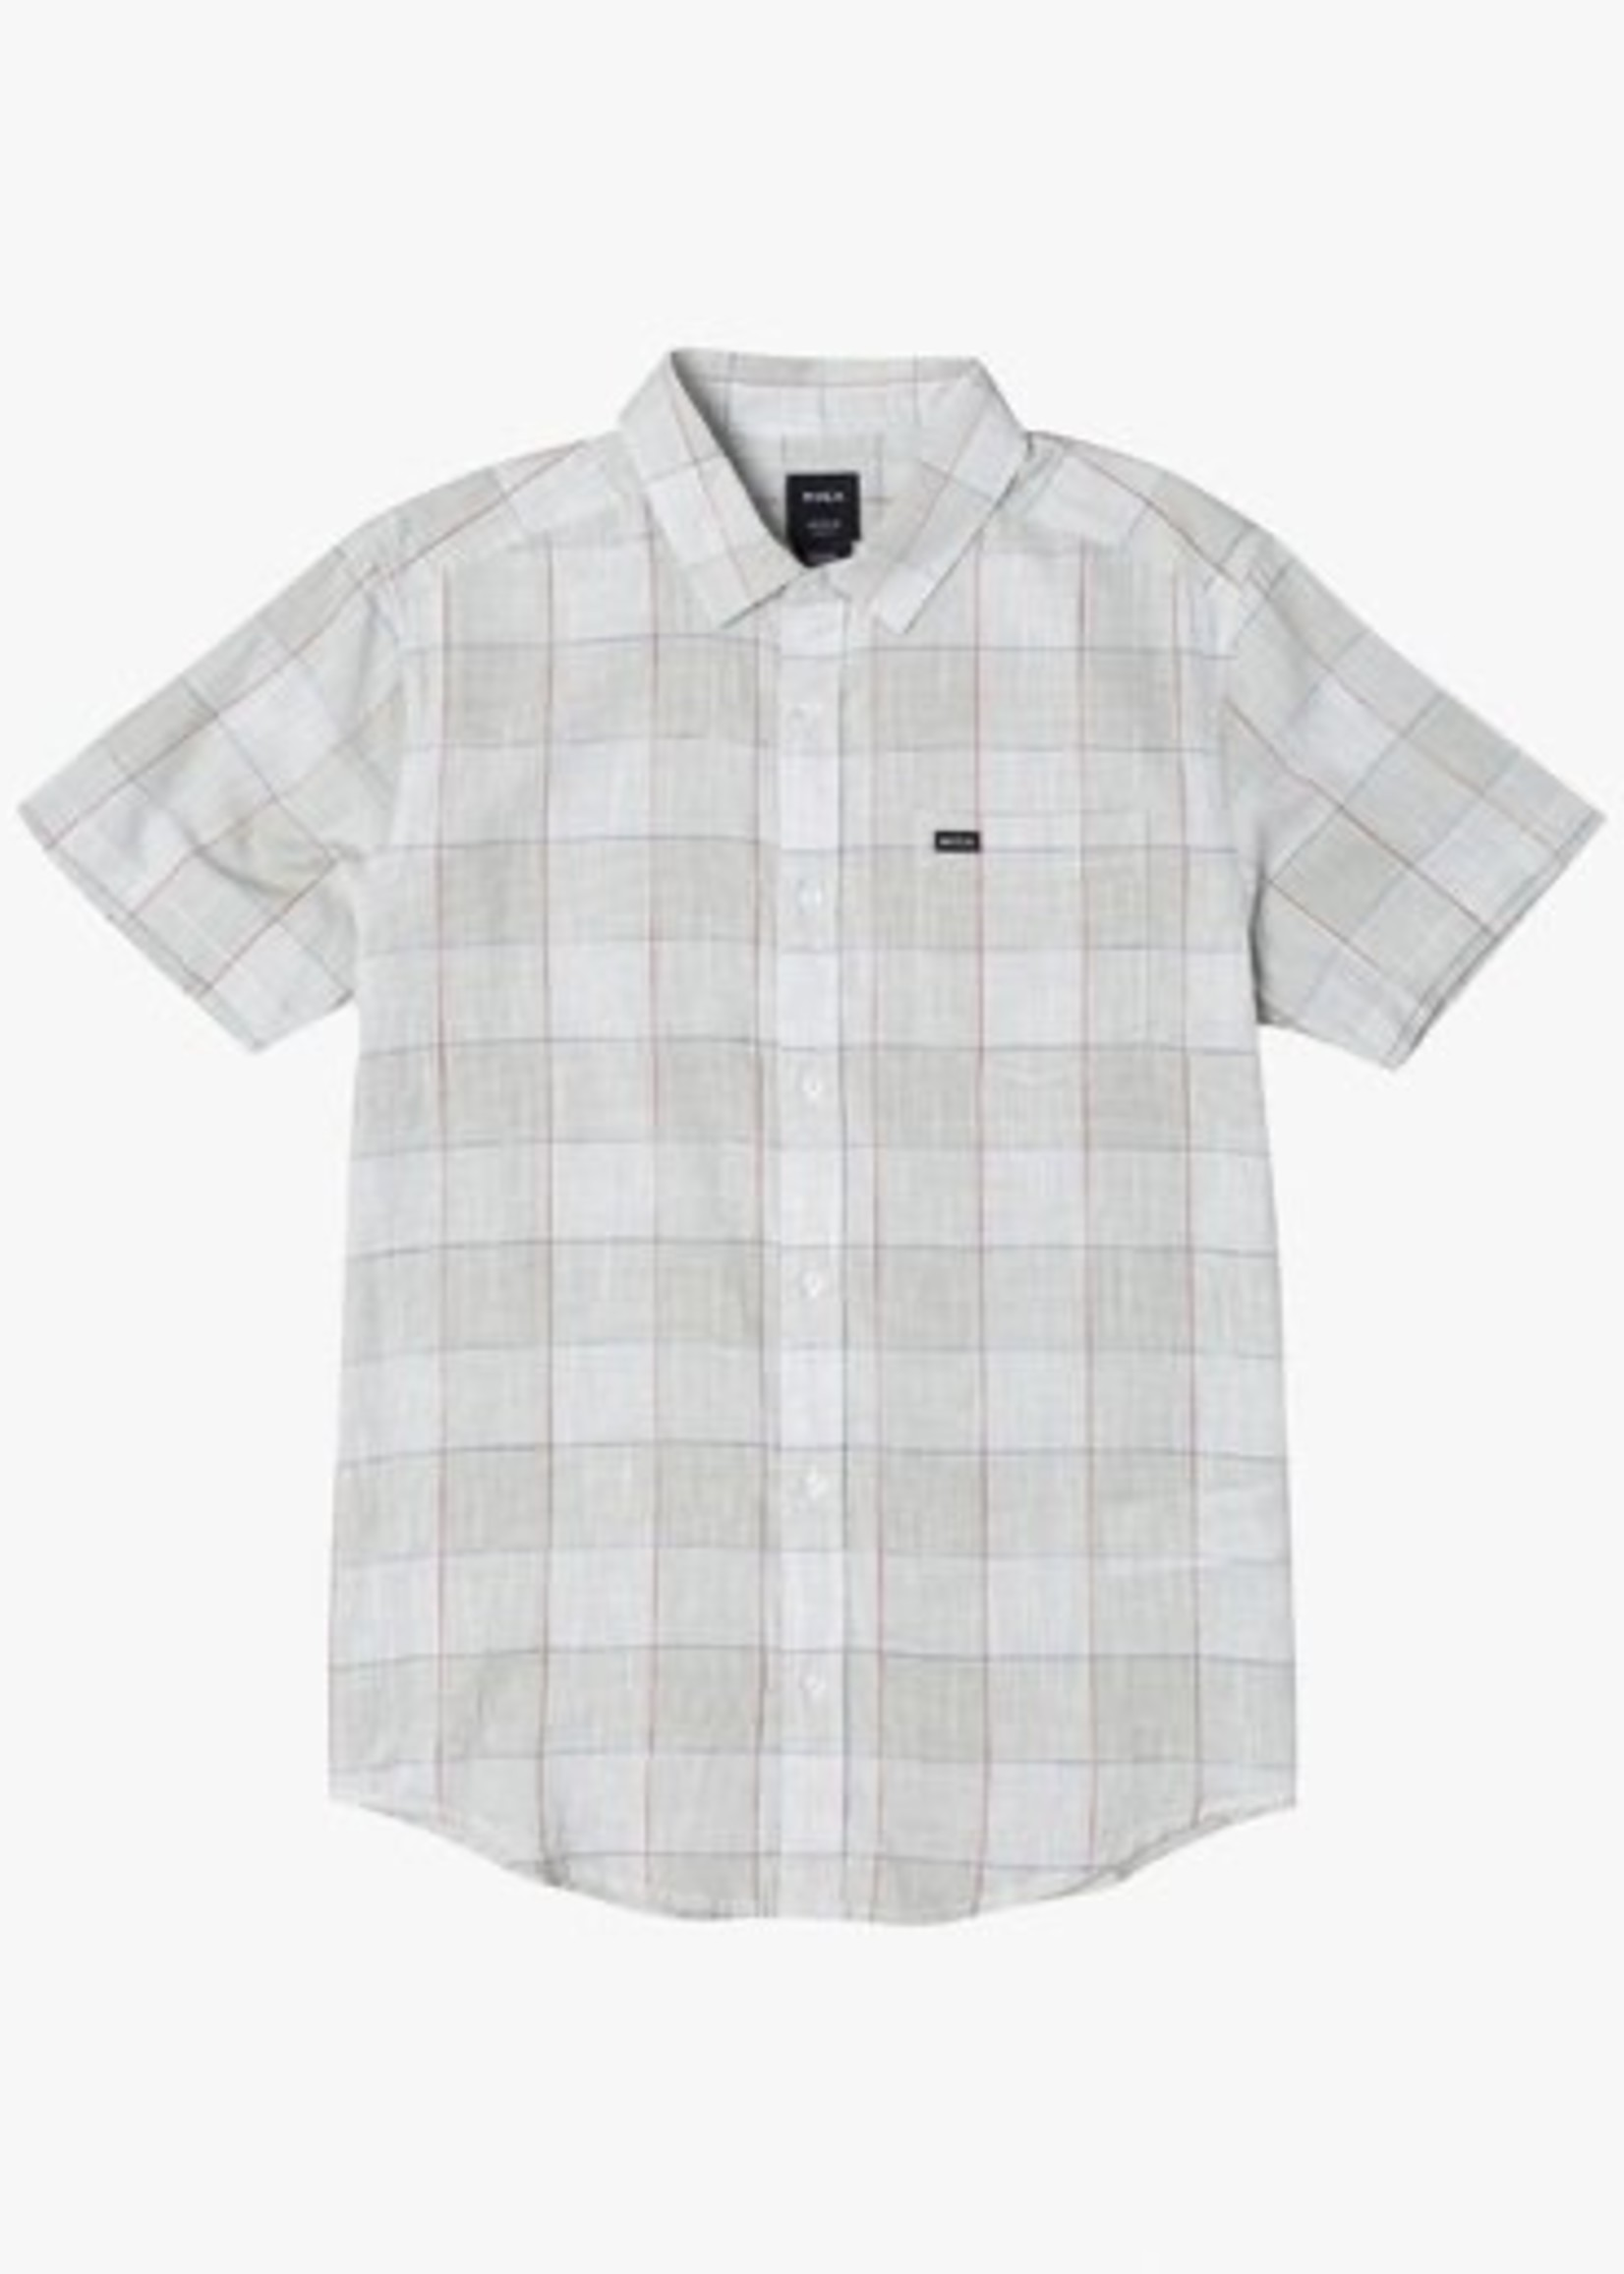 RVCA SUNNYDALE BUTTON-UP SHIRT